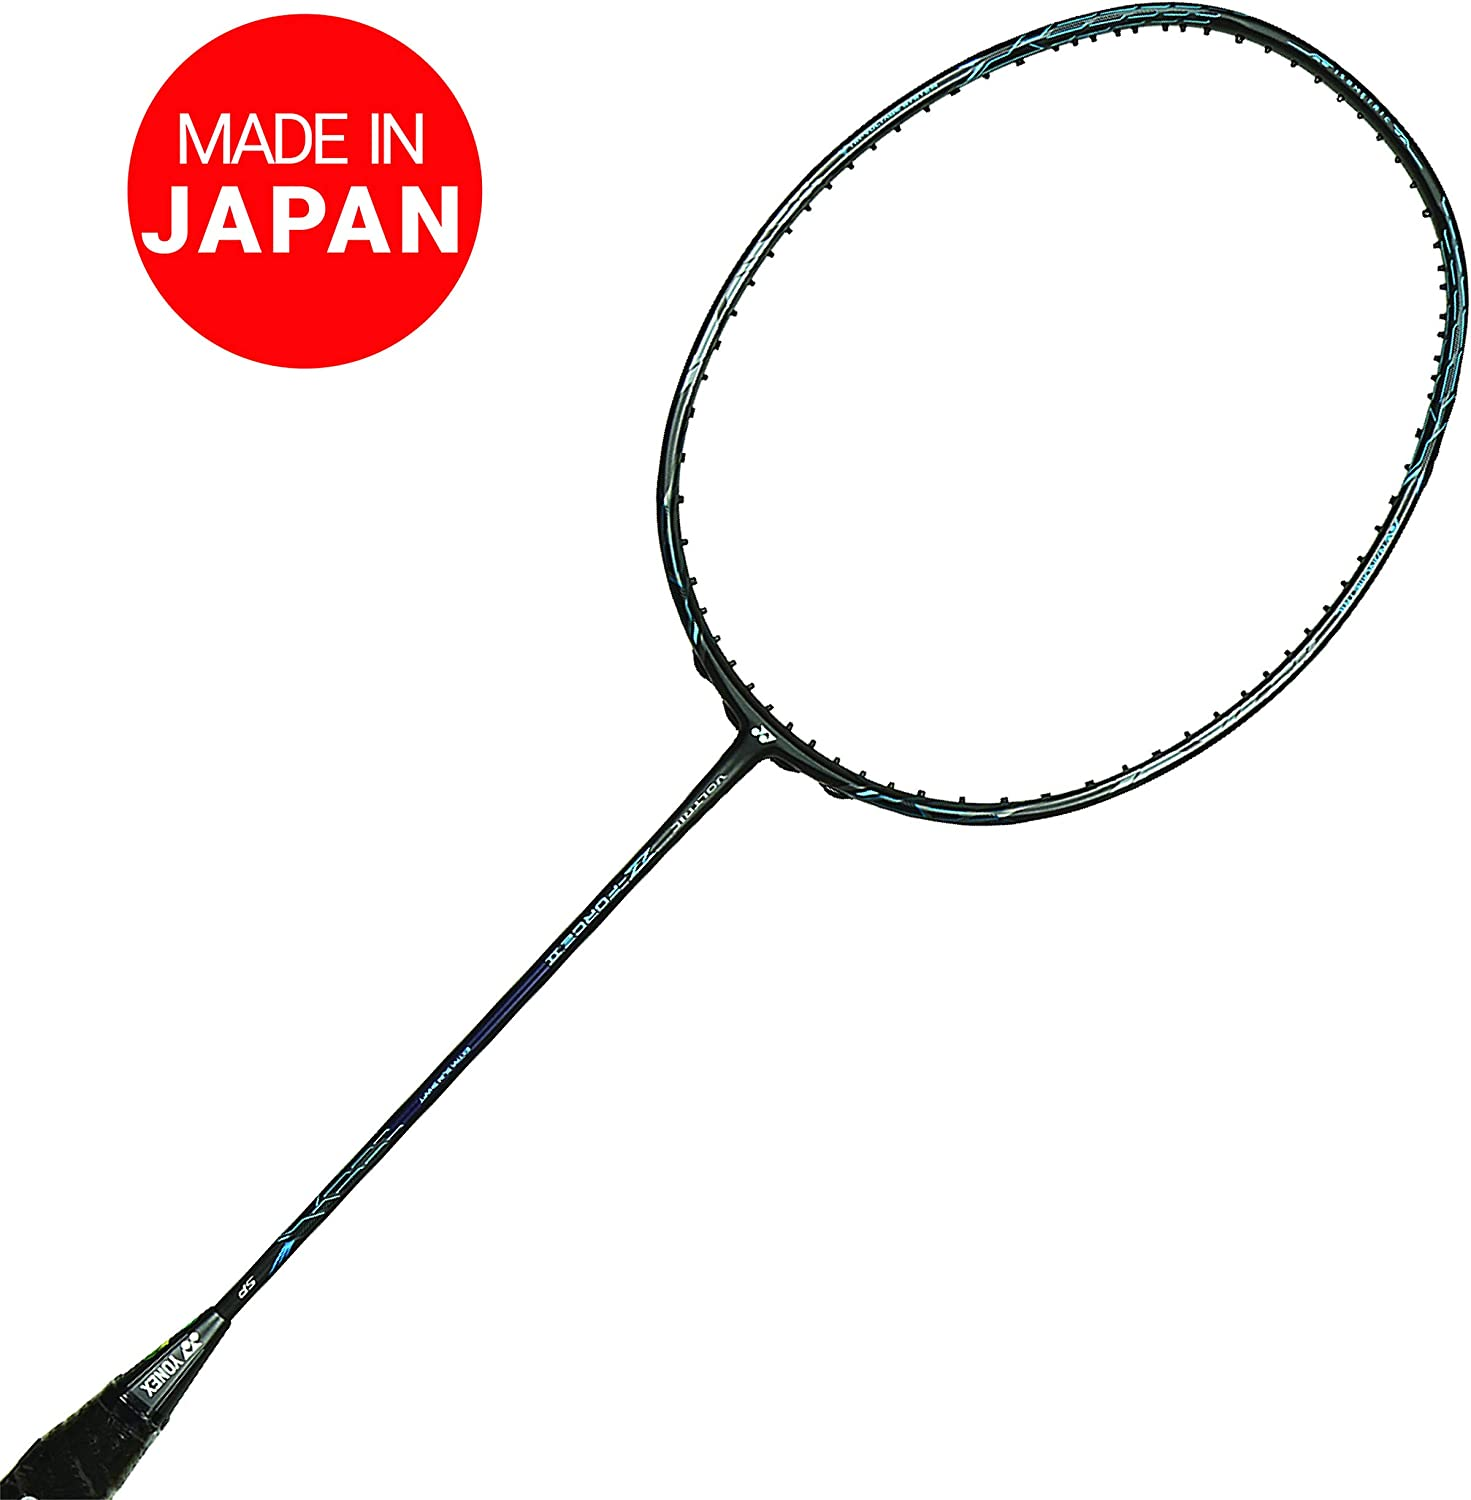 Yonex Badminton Rackets Voltric Z Force II 2 White Racquets With Free Gift Pack